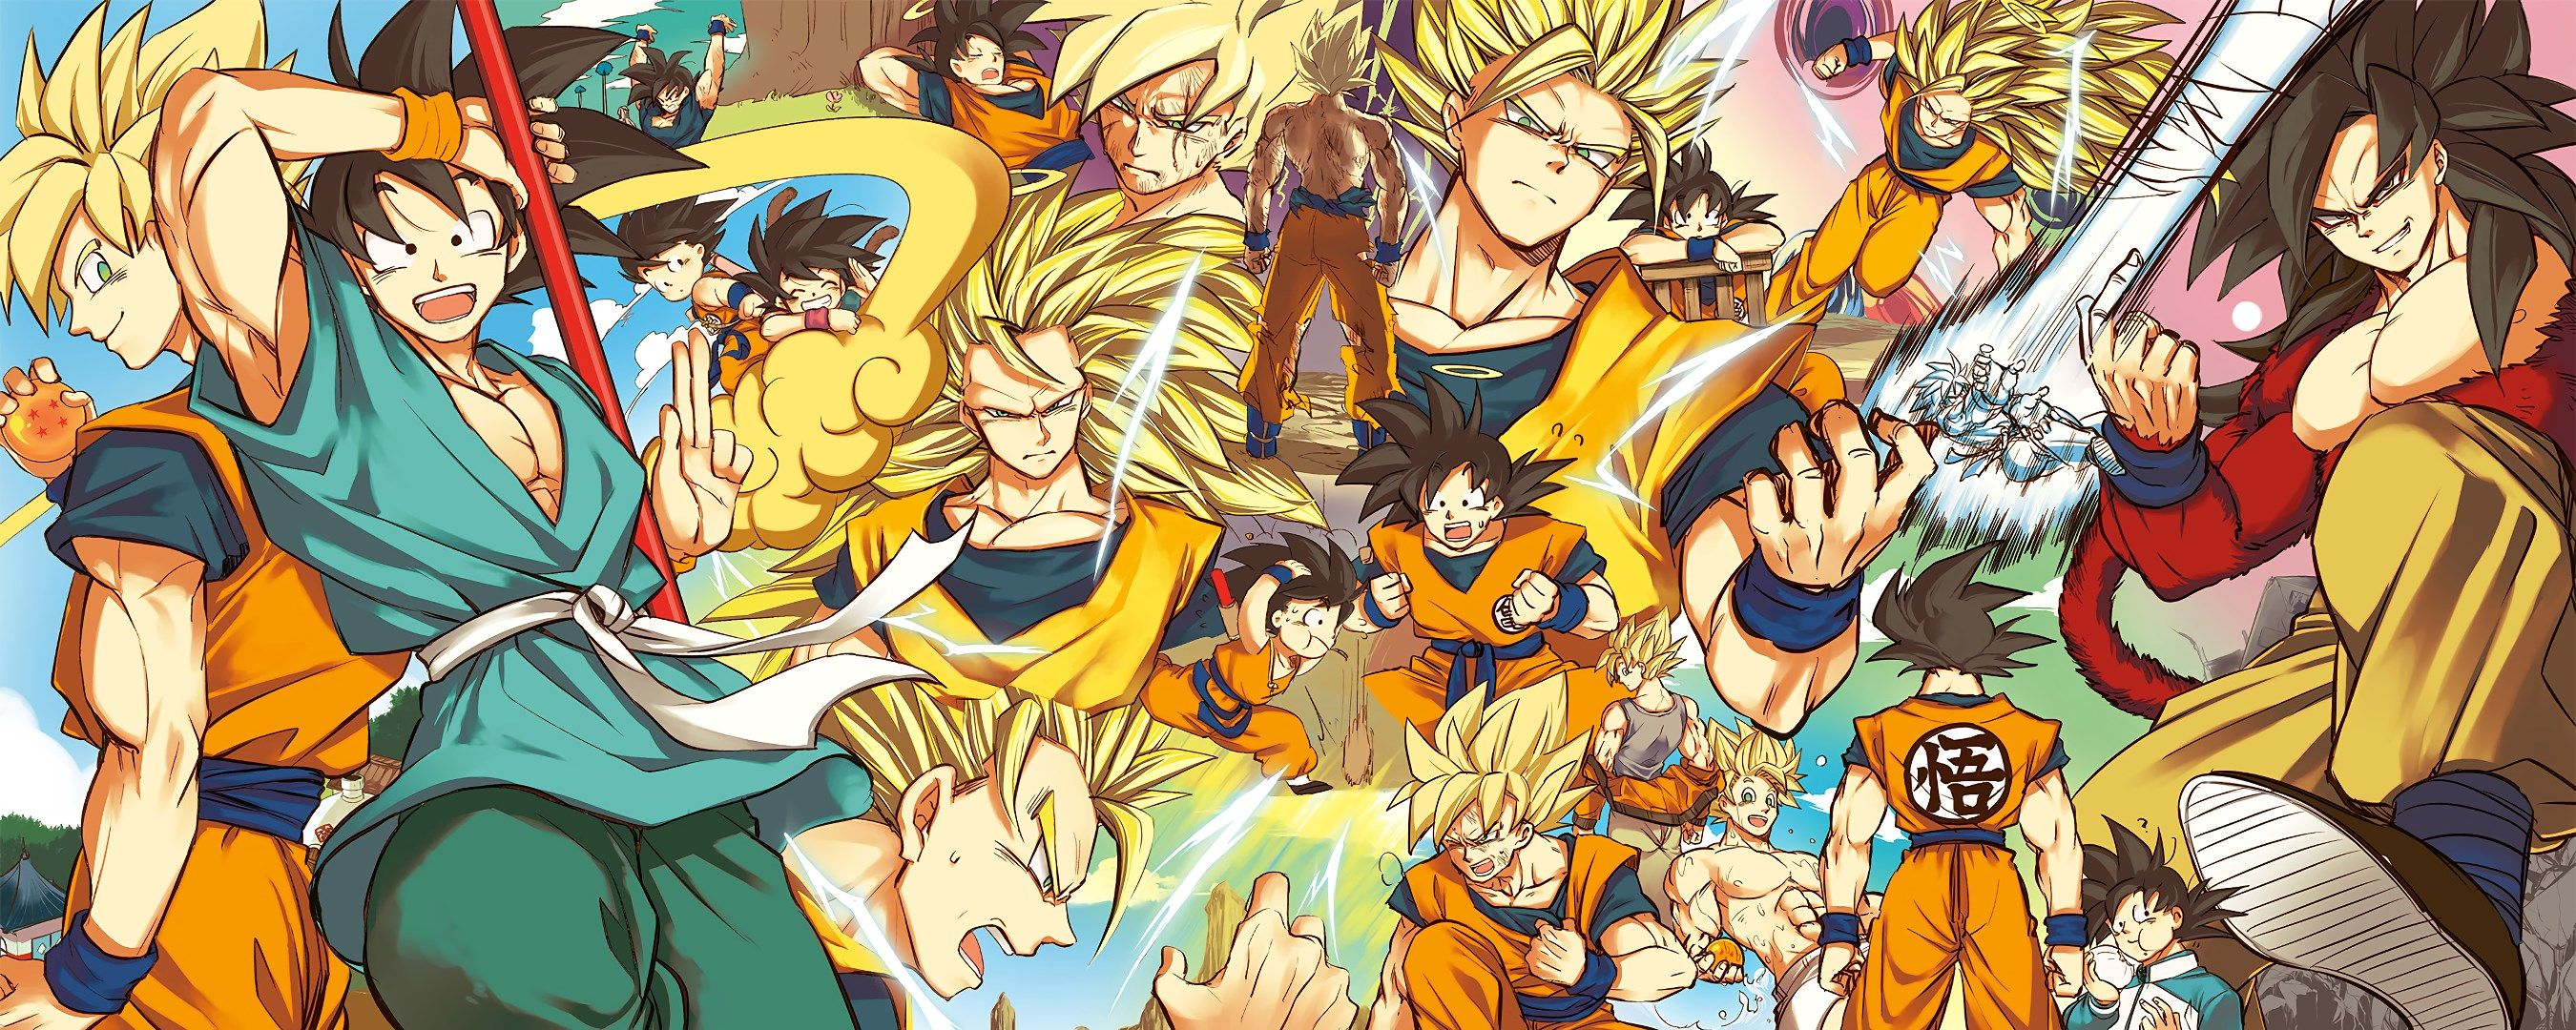 Dragon Ball Manga Wallpaper Posted By Ethan Sellers